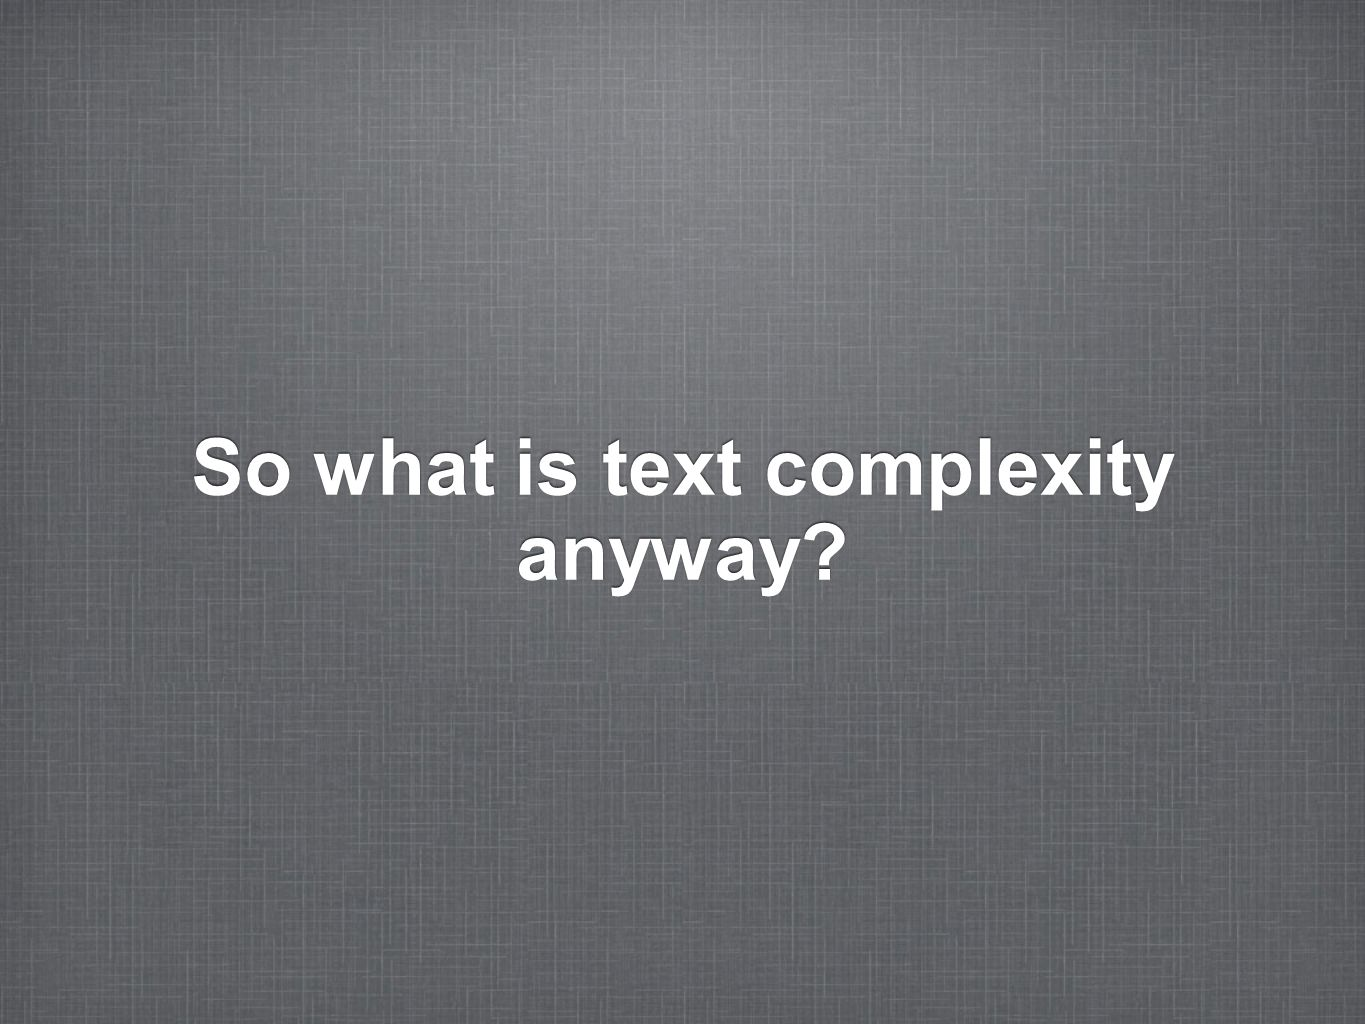 So what is text complexity anyway